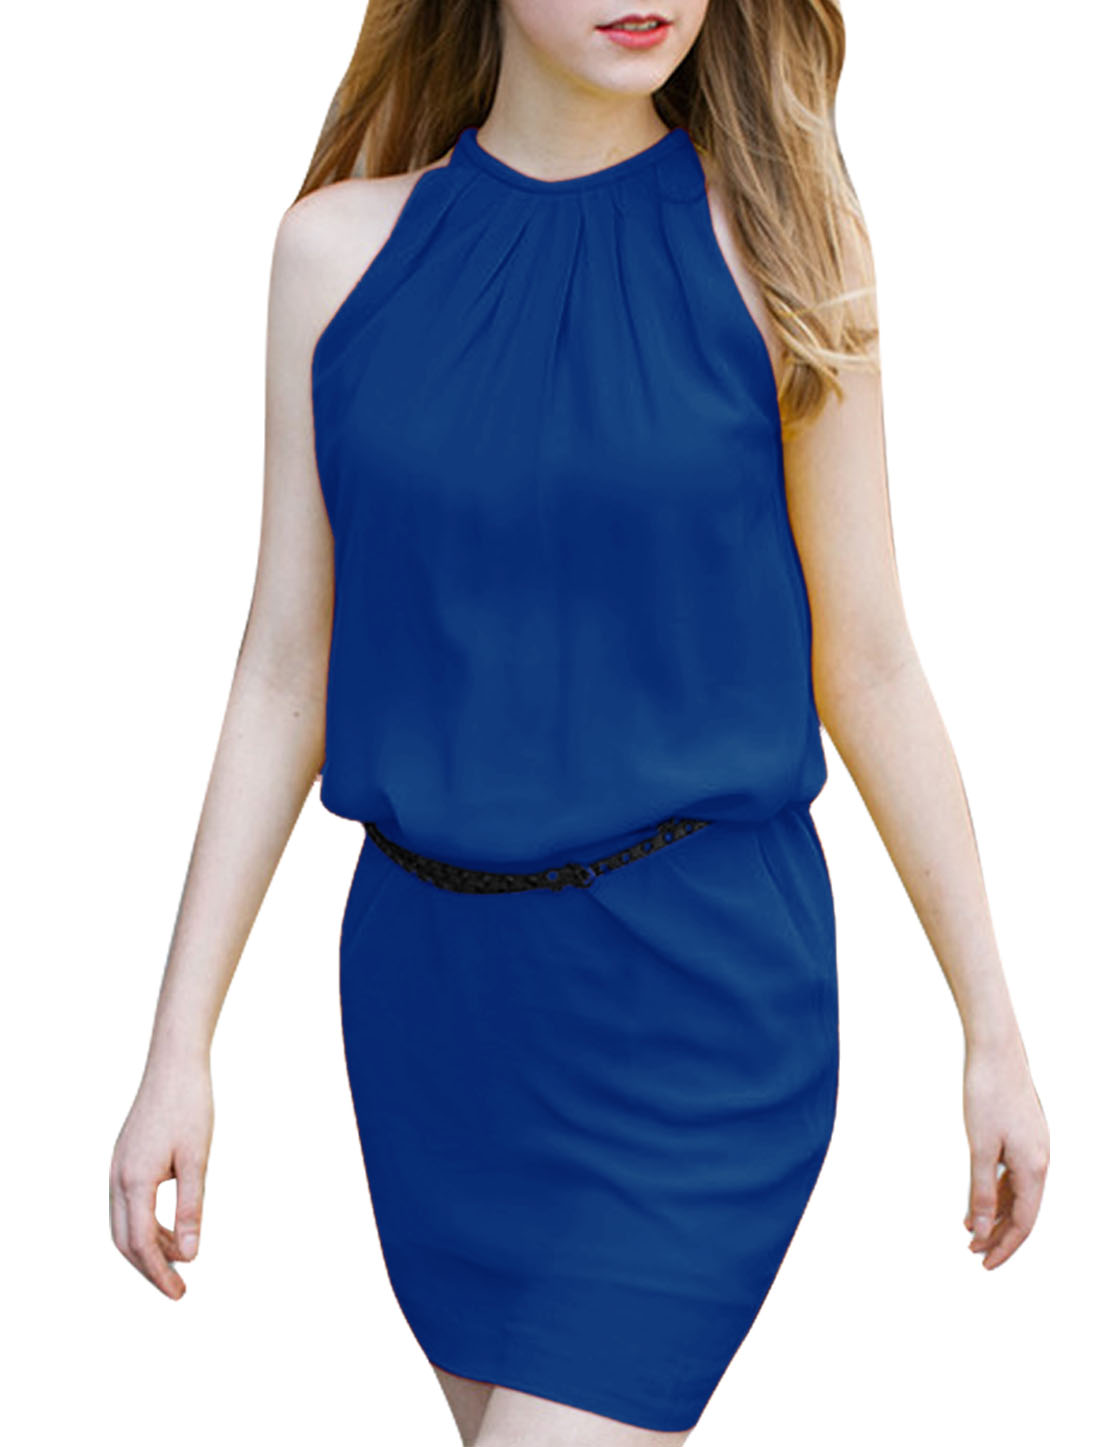 Women Halter Neck Zip Closure Dress Royal Blue M